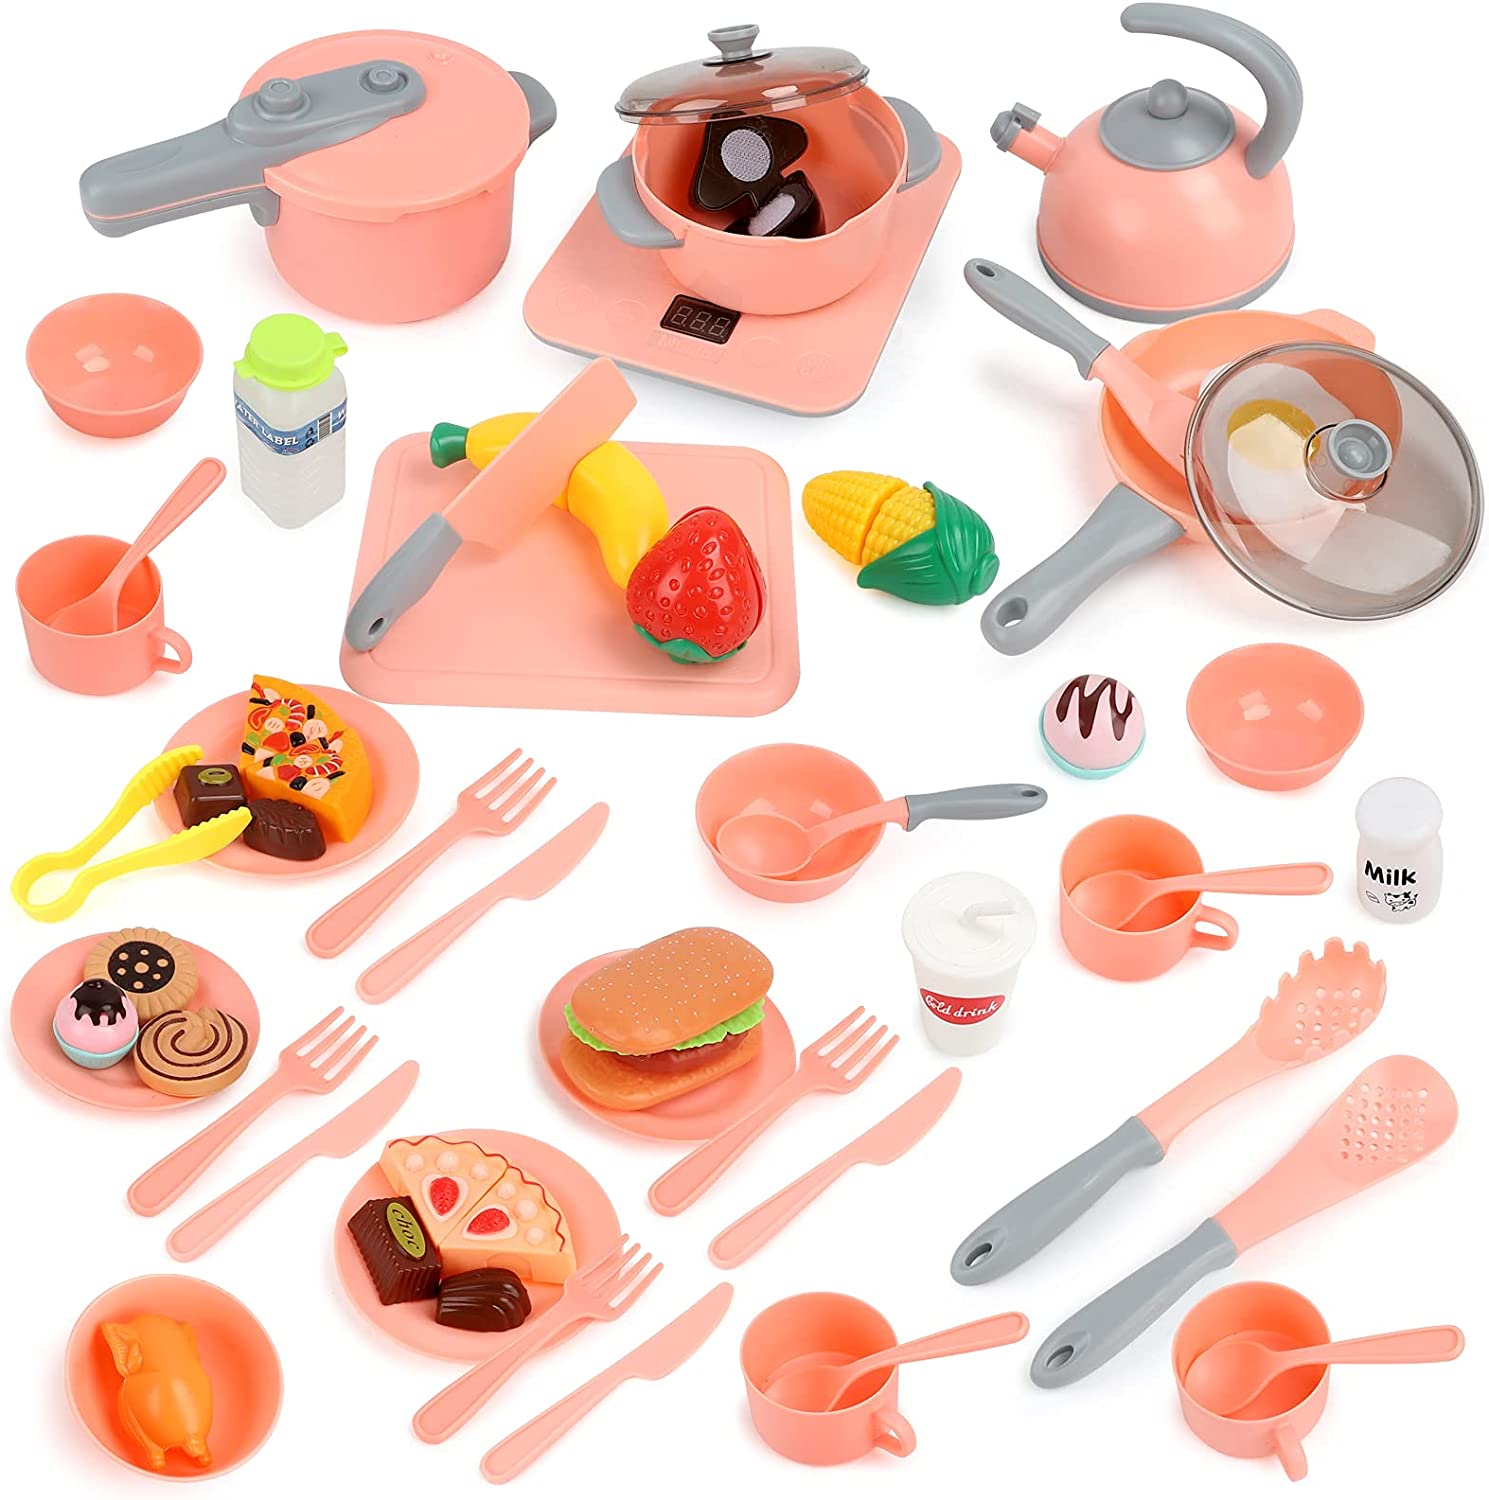 Aomola Kids Kitchen Pretend Play Toys 61PCS Cooking Set for Toddlers Cookware Pots and Pans Playset, Cooking Utensils, Toy Cutlery, Cutting Play Food Pink